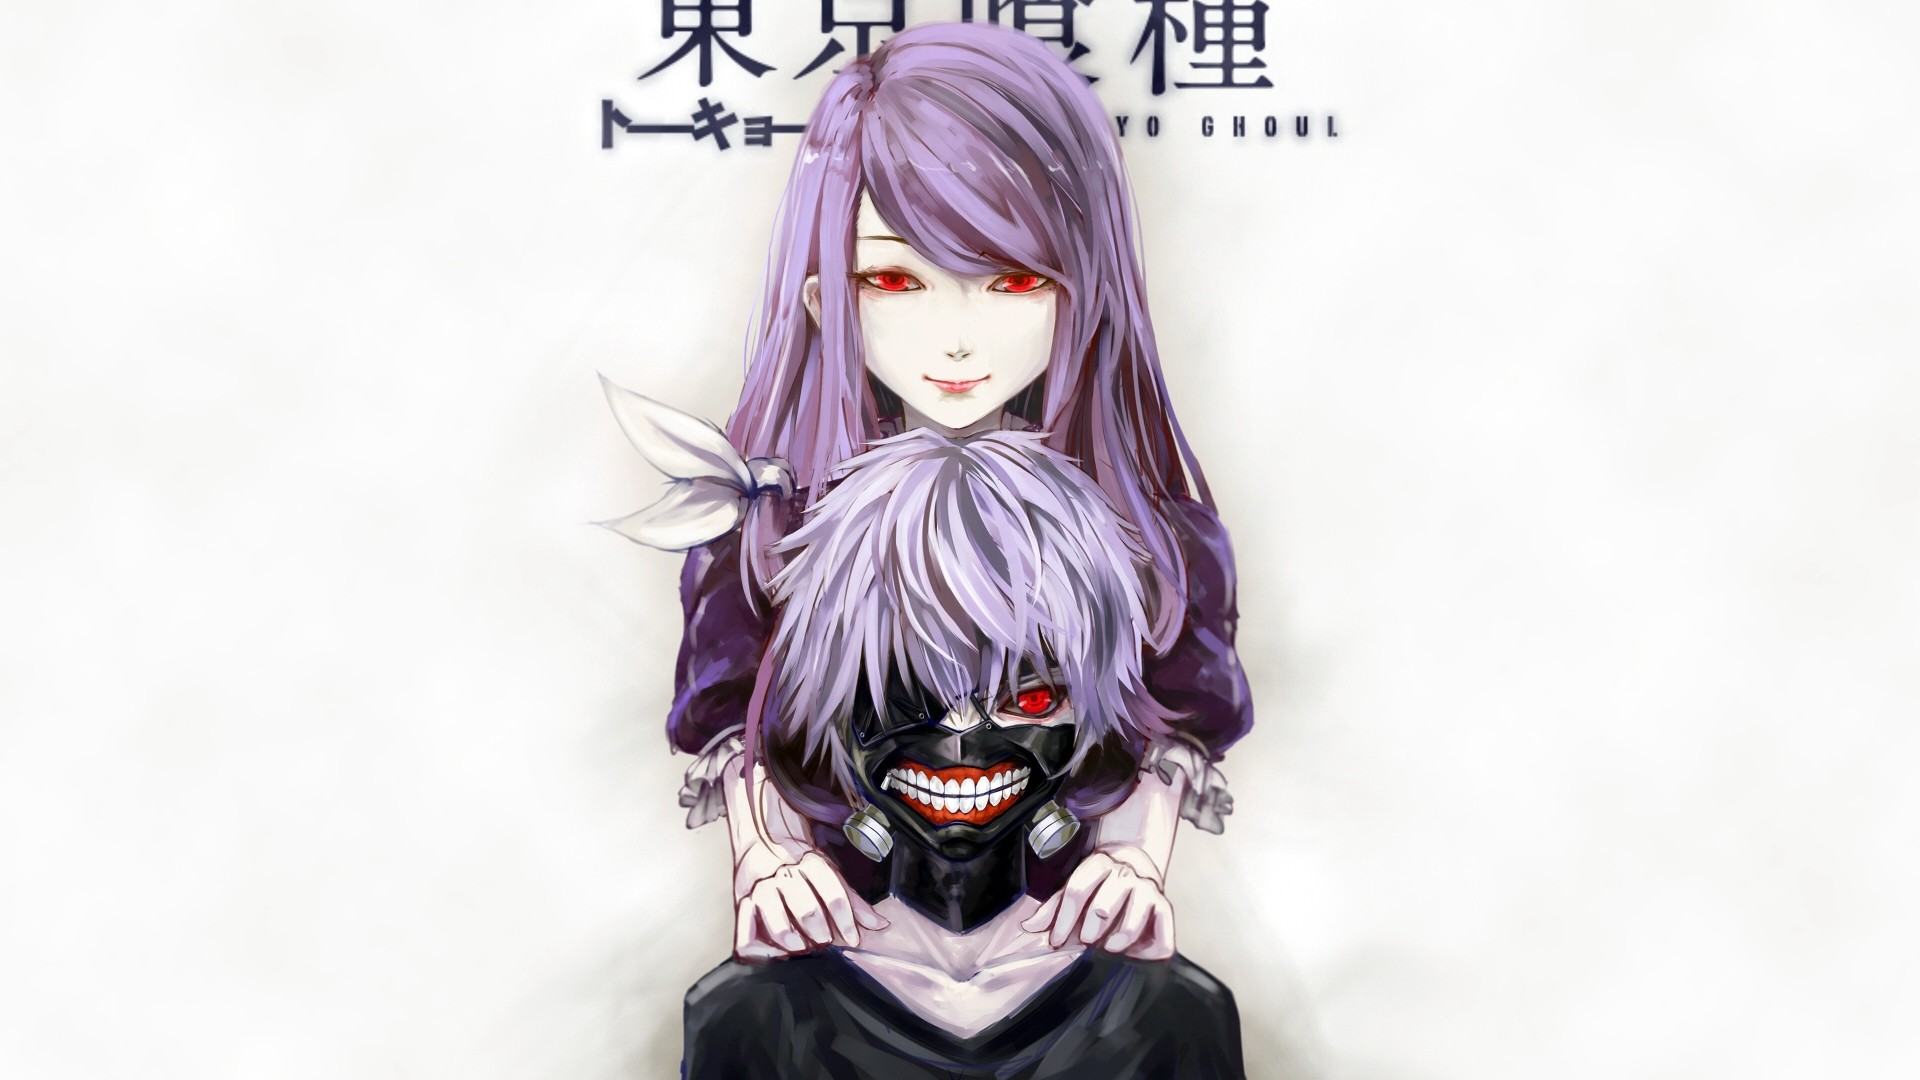 Anime Wallpapers Tokyo Ghoul HD 4K Download For Mobile iPhone & PC